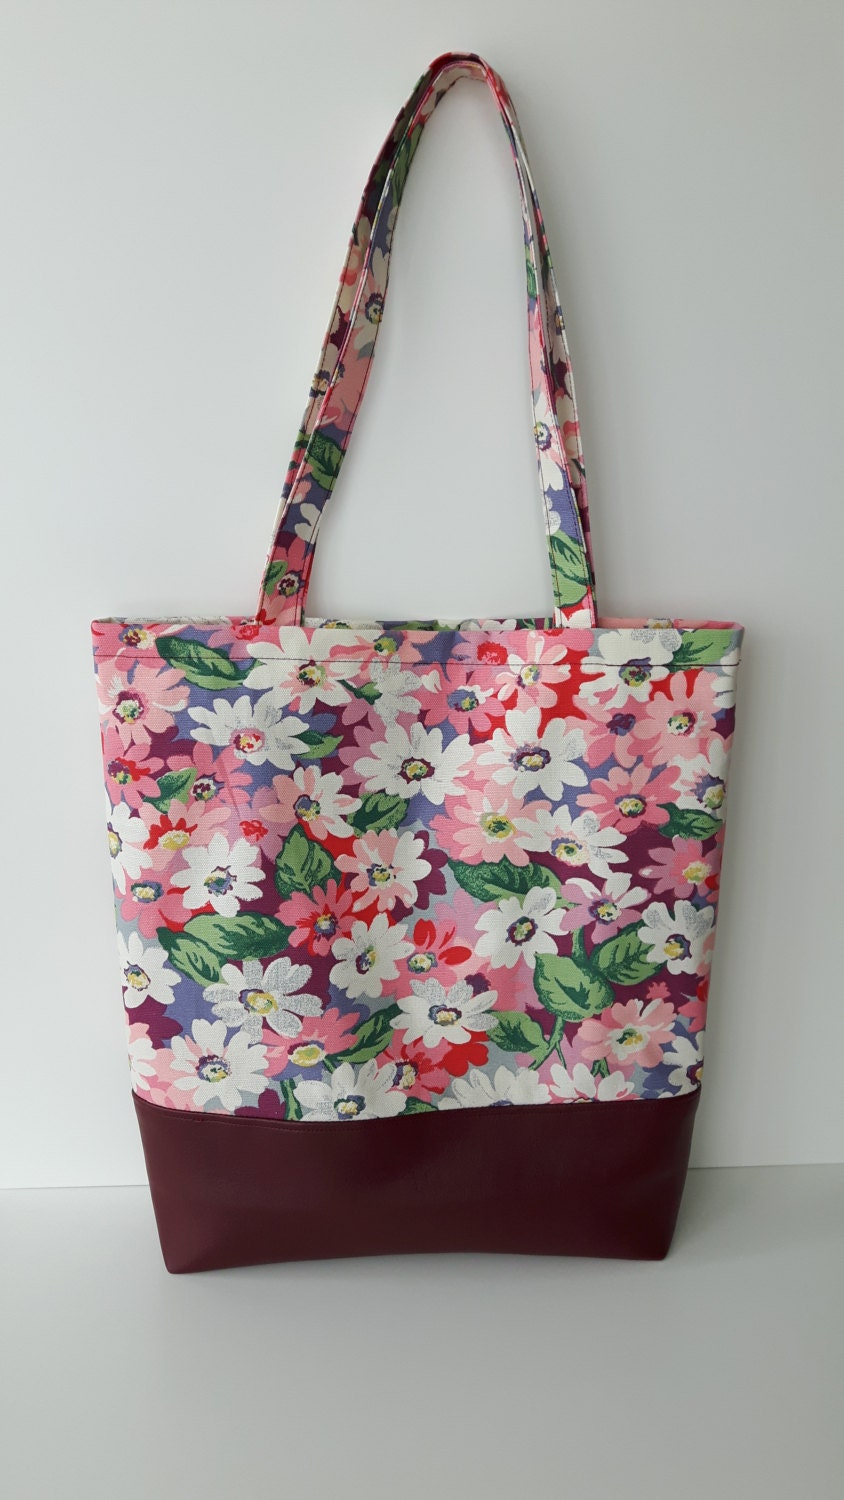 SALE 20 Floral tote  bag in Cath Kidston  waterproof  fabric with soft faux leather bottom  Floral tote bag Large tote bag